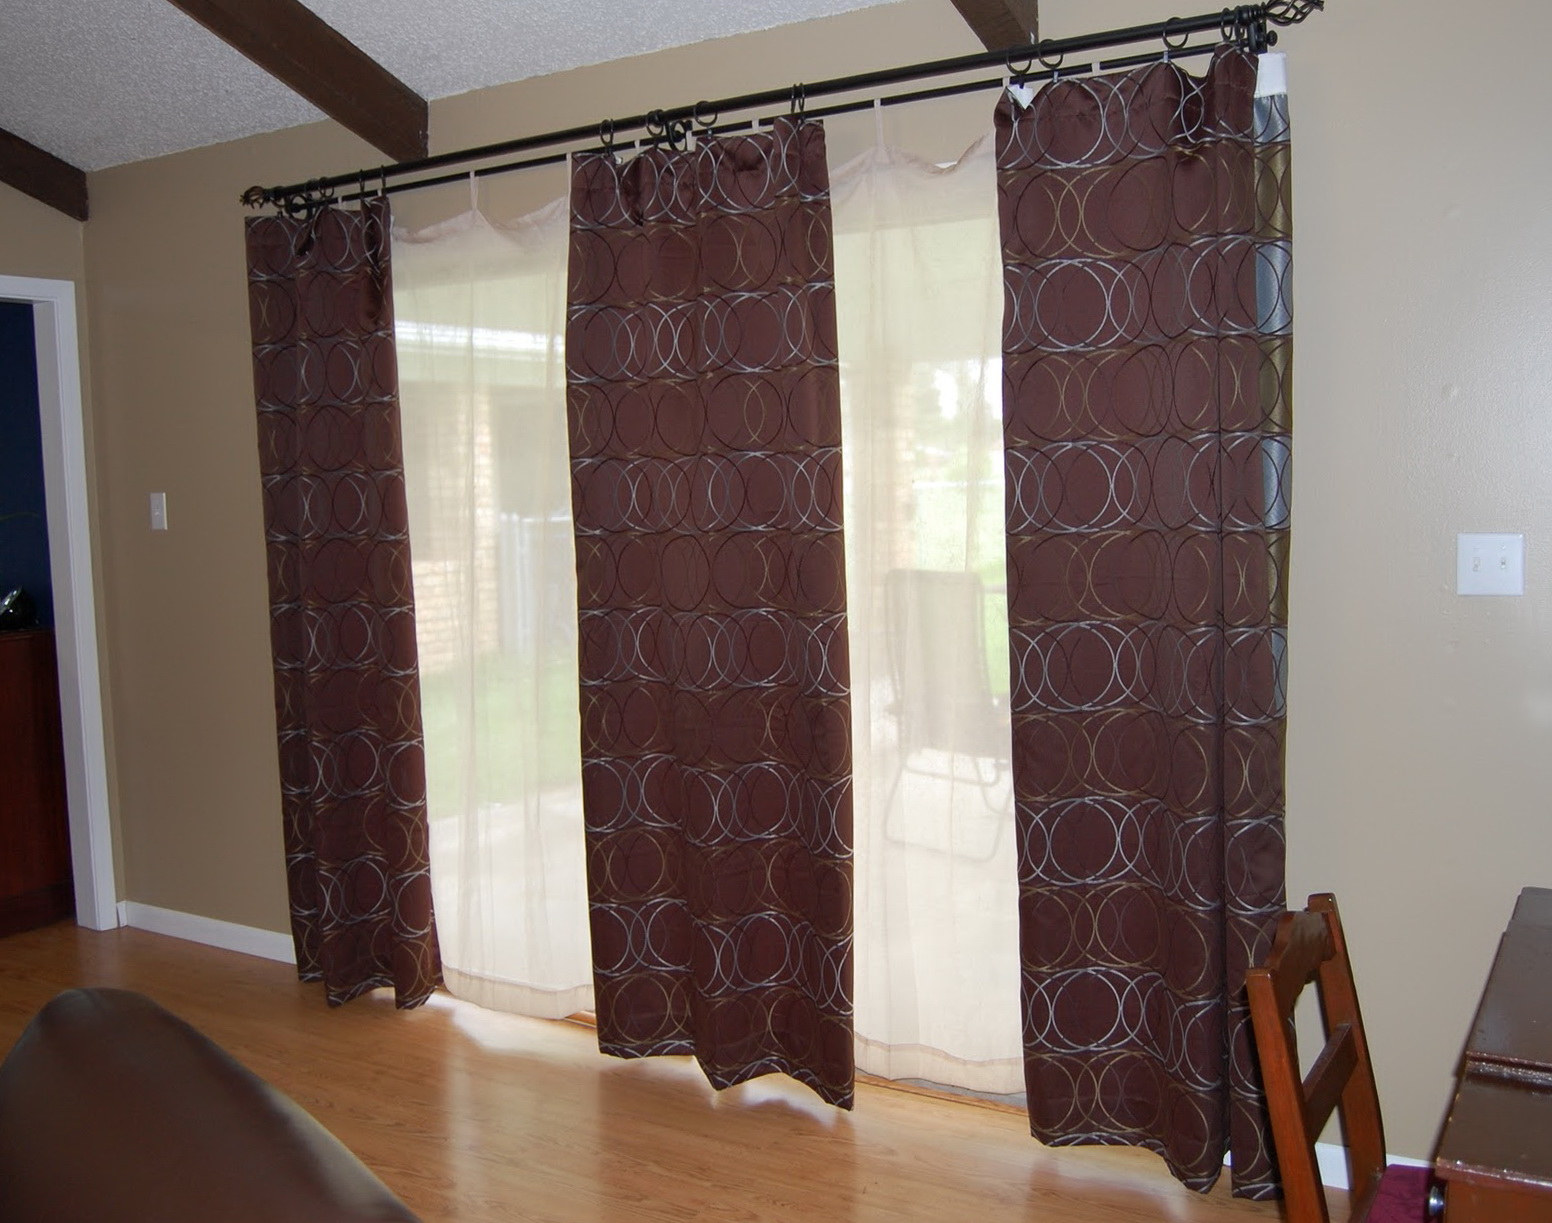 Curtain Ideas For Sliding Glass Doors In Kitchen